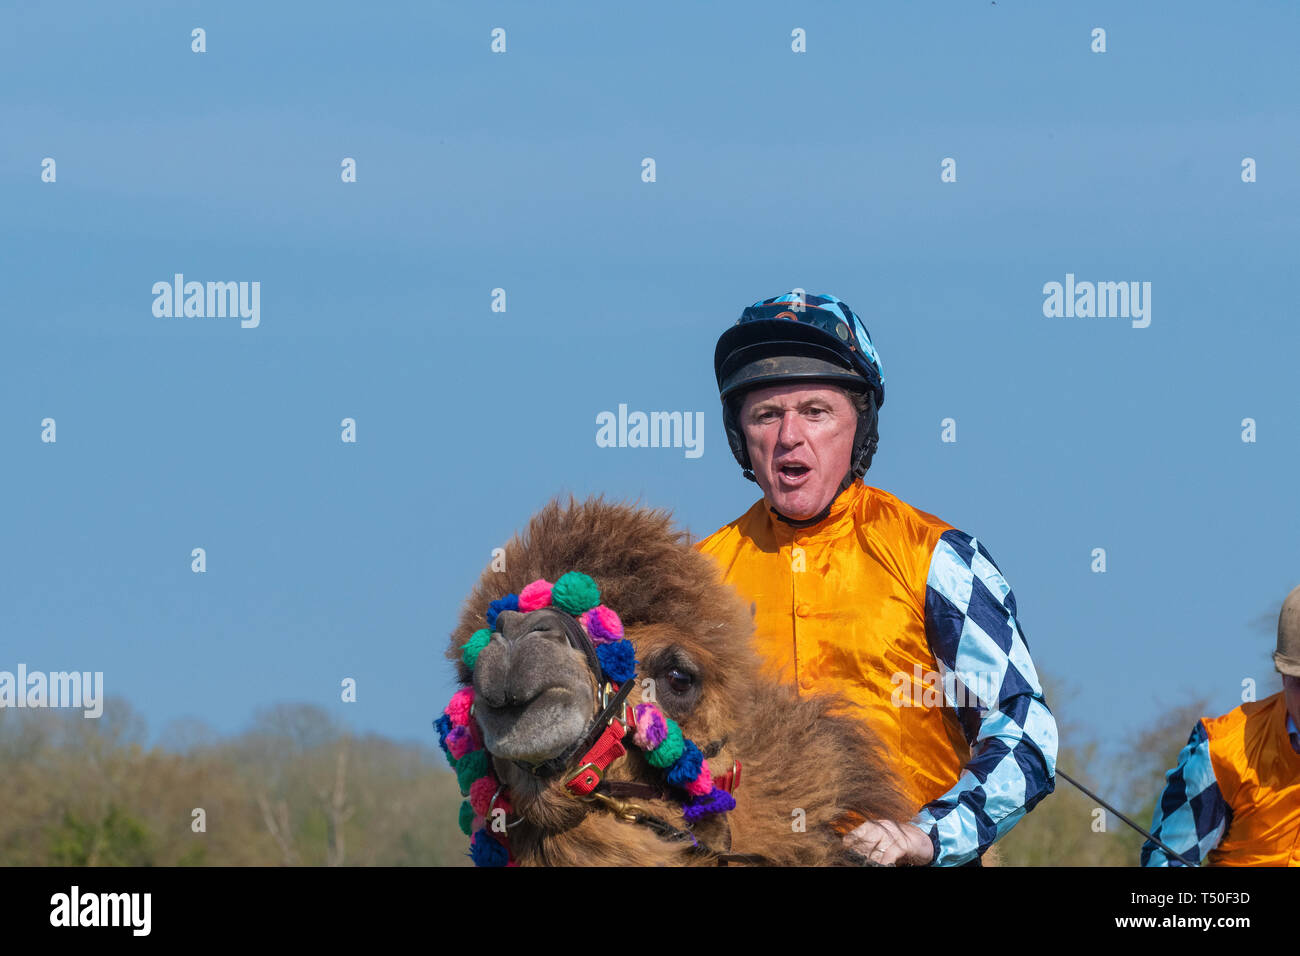 Hungerford, West Berkshire, UK. 19th Apr 2019. Melbourne 10 Racing Camel Racing in the main area thrilling the crowds with AP McCoy (Sir Anthony Peter McCoy OBE, commonly known as AP McCoy ) former champion horse racing jockey taking the the lead and onto win the race over famous horse race trainer Jamie Osborne and Nico de Boinville racing jockey who competes in National Hunt racing. Stock Photo